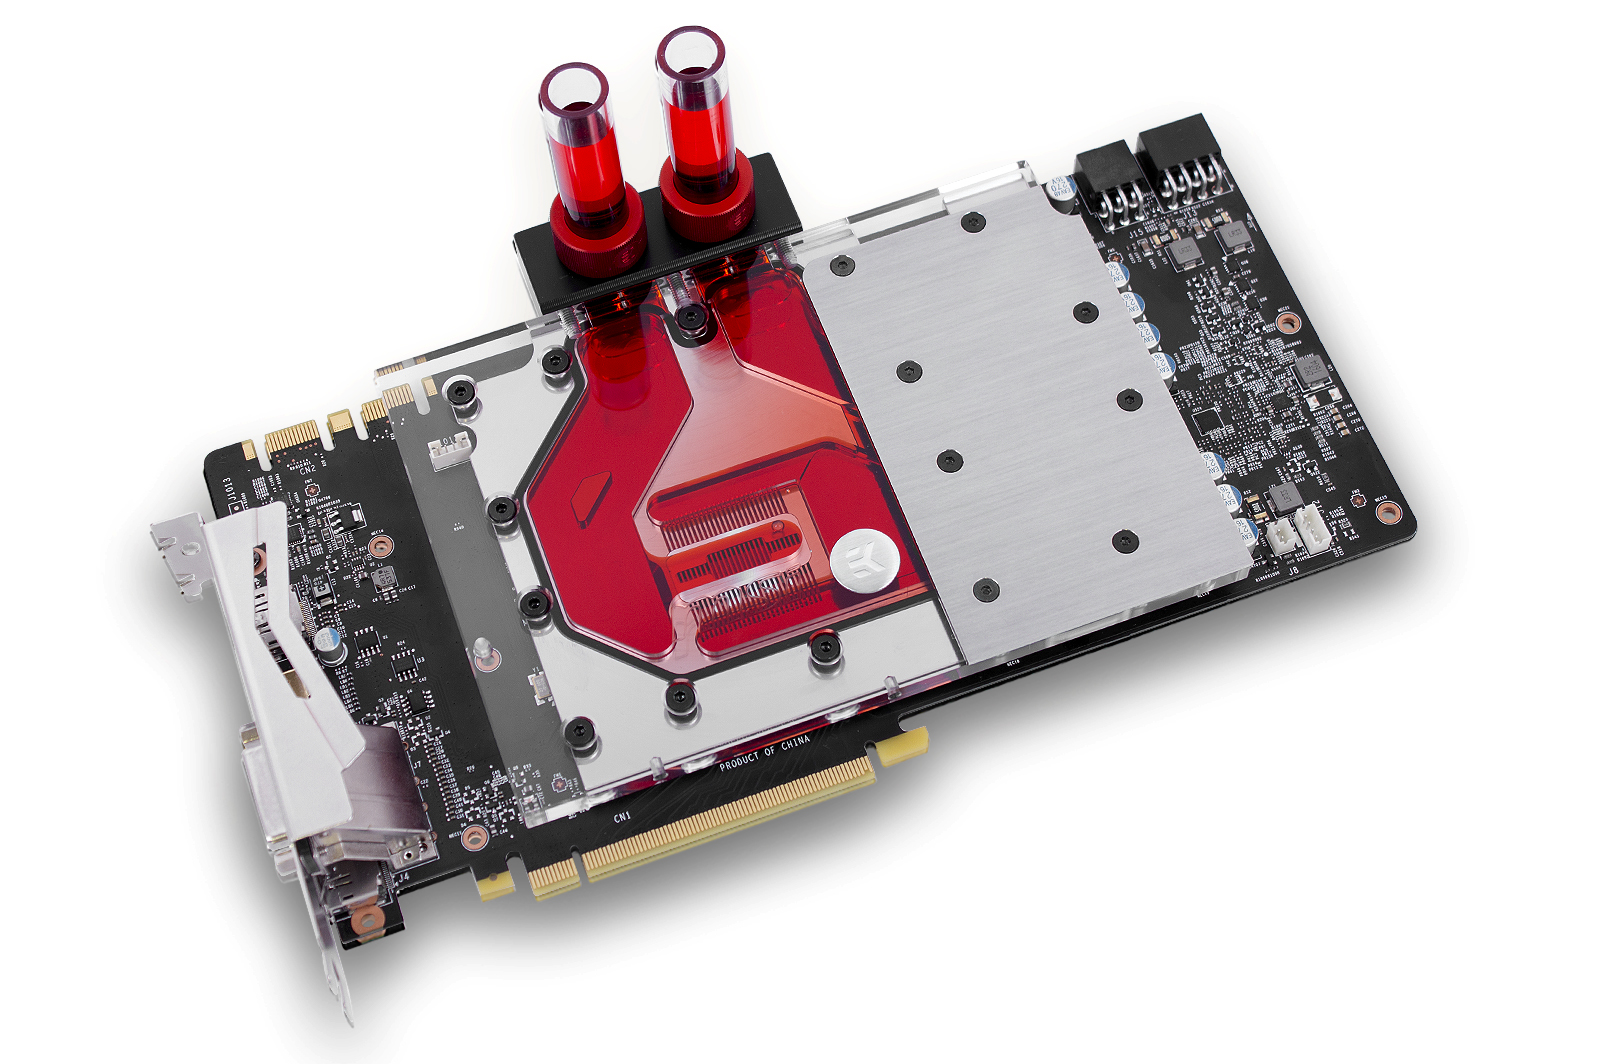 Ek Releases Msi Geforce Gtx 1080 Tf6 Full Cover Water Block 1070 Gaming X 8g Fc1080 Is A High Performance Intended To Replace The Original Twinfrozr Vi Cooler That Comes With Graphics Card